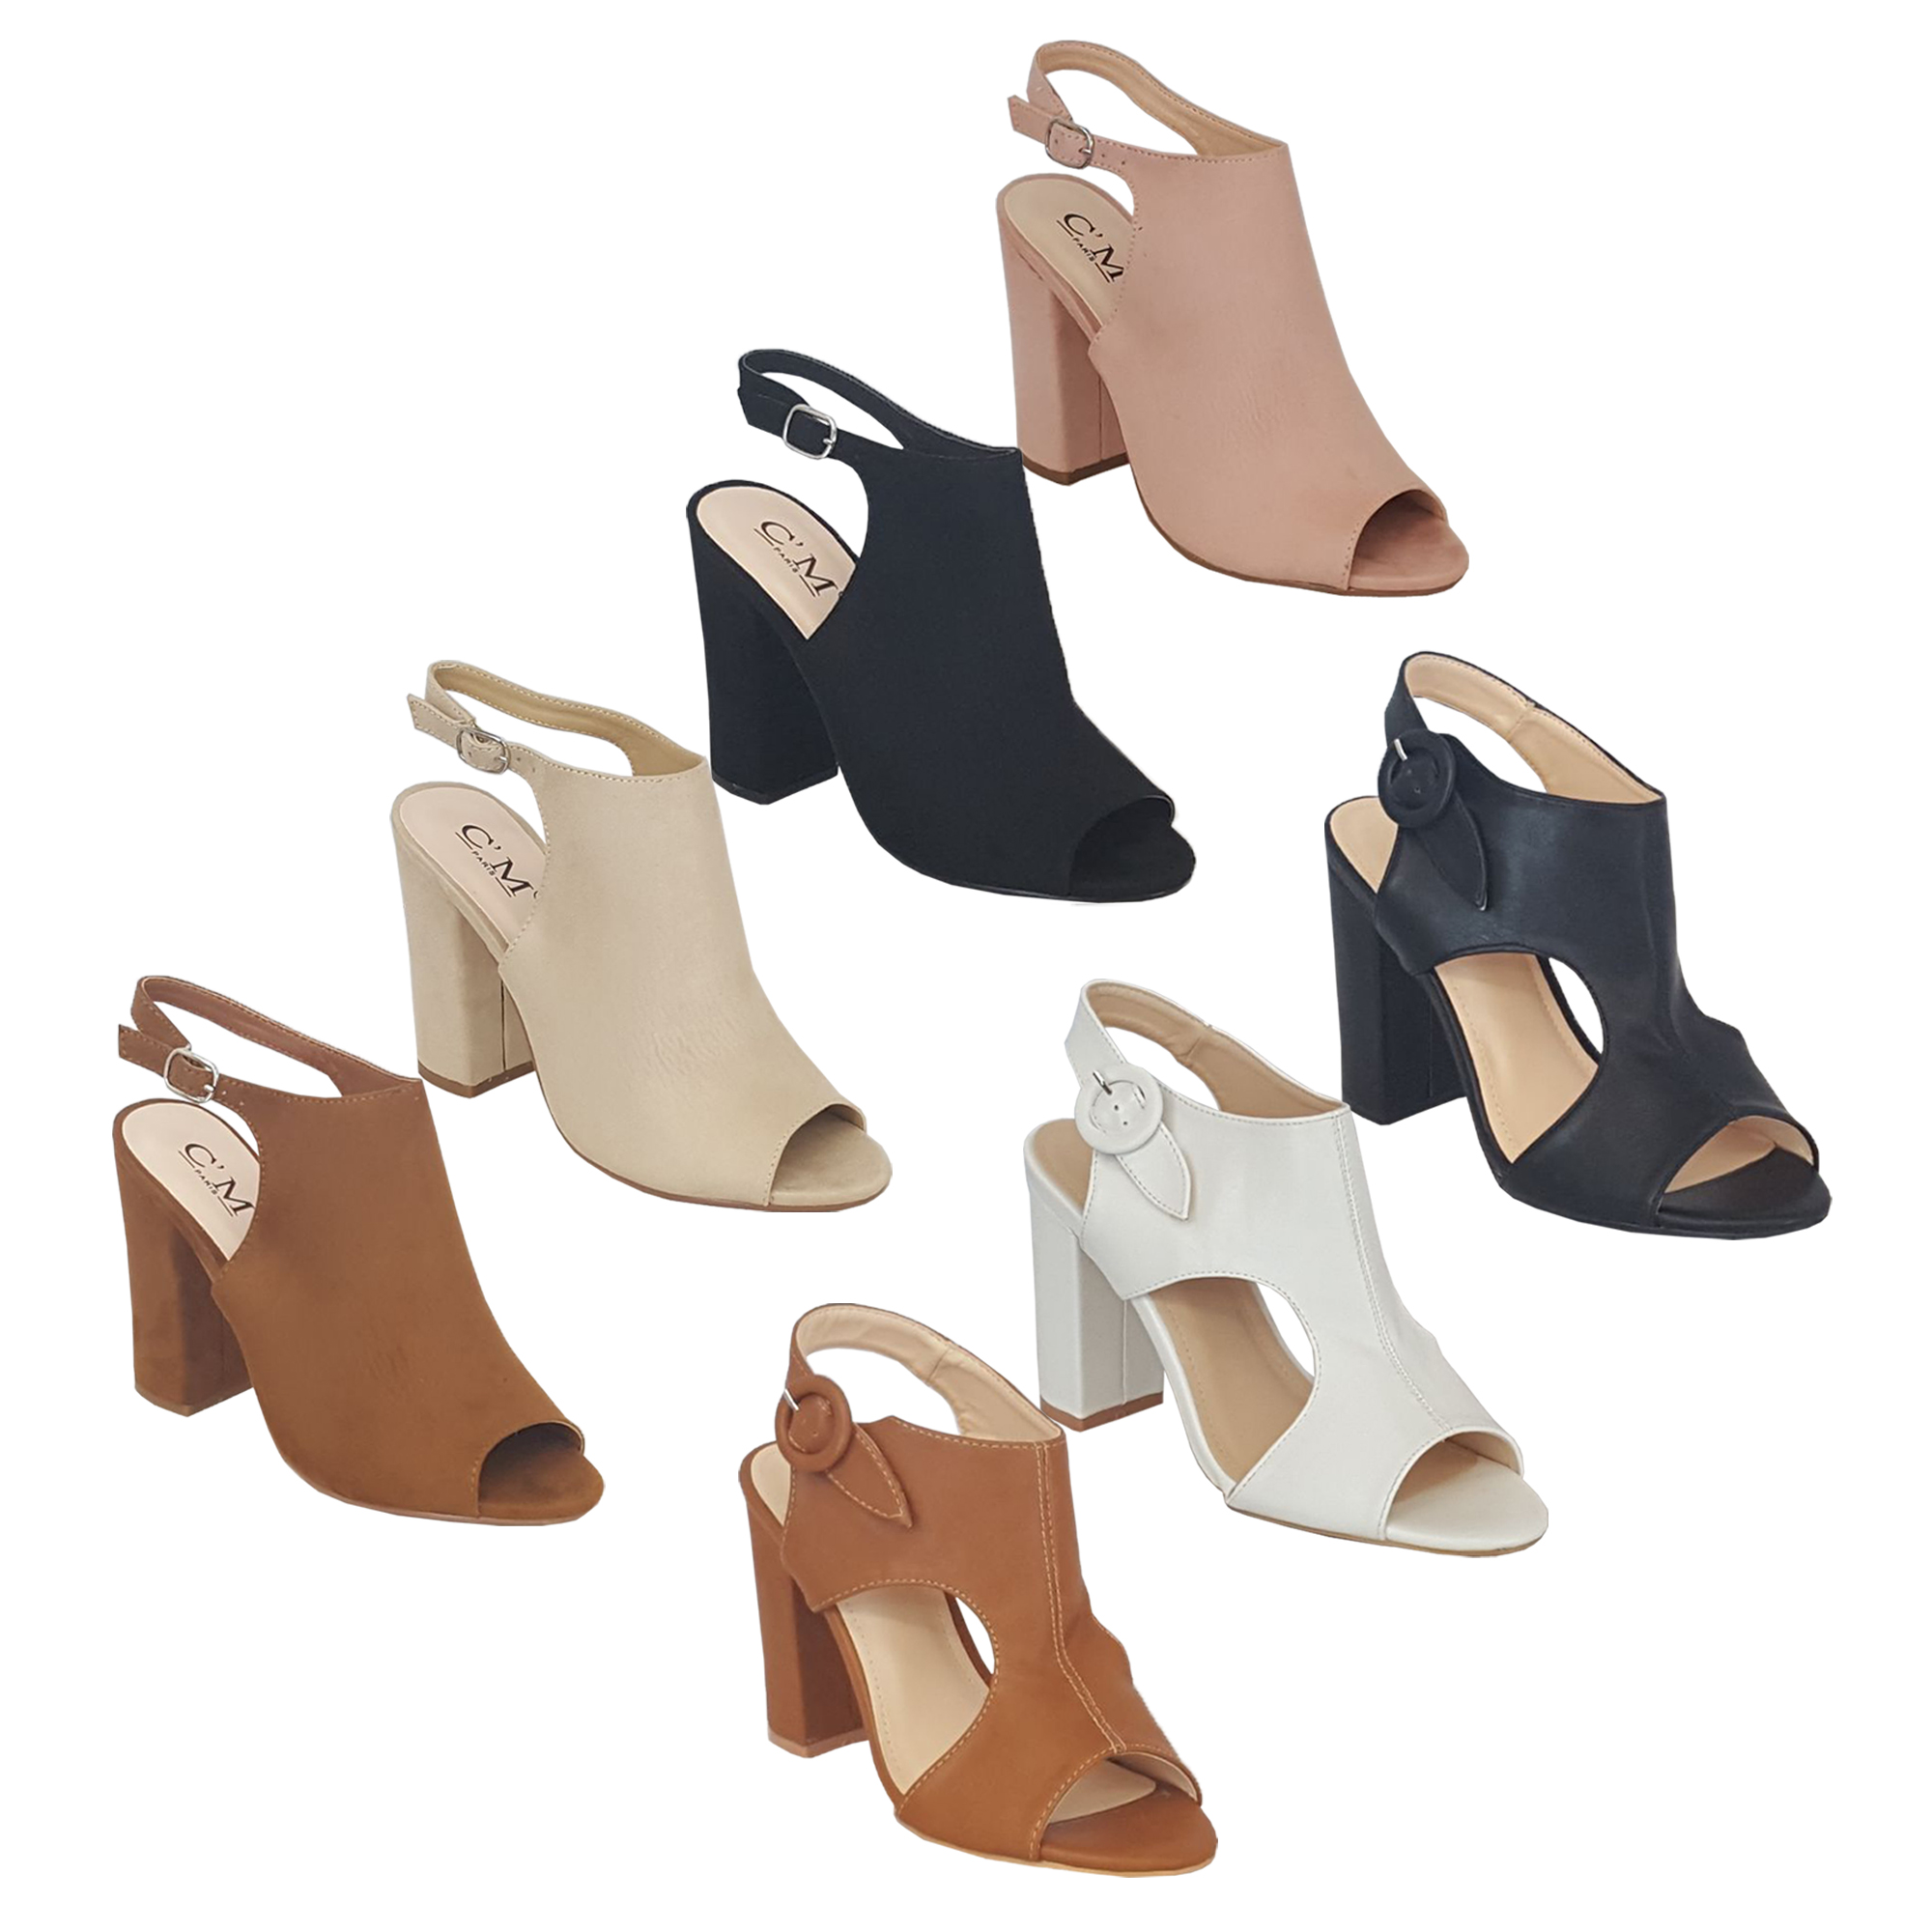 a98845ada11 Ladies Mule Sandals Womens Block Heel Peep Toe Shoes Buckle Party ...